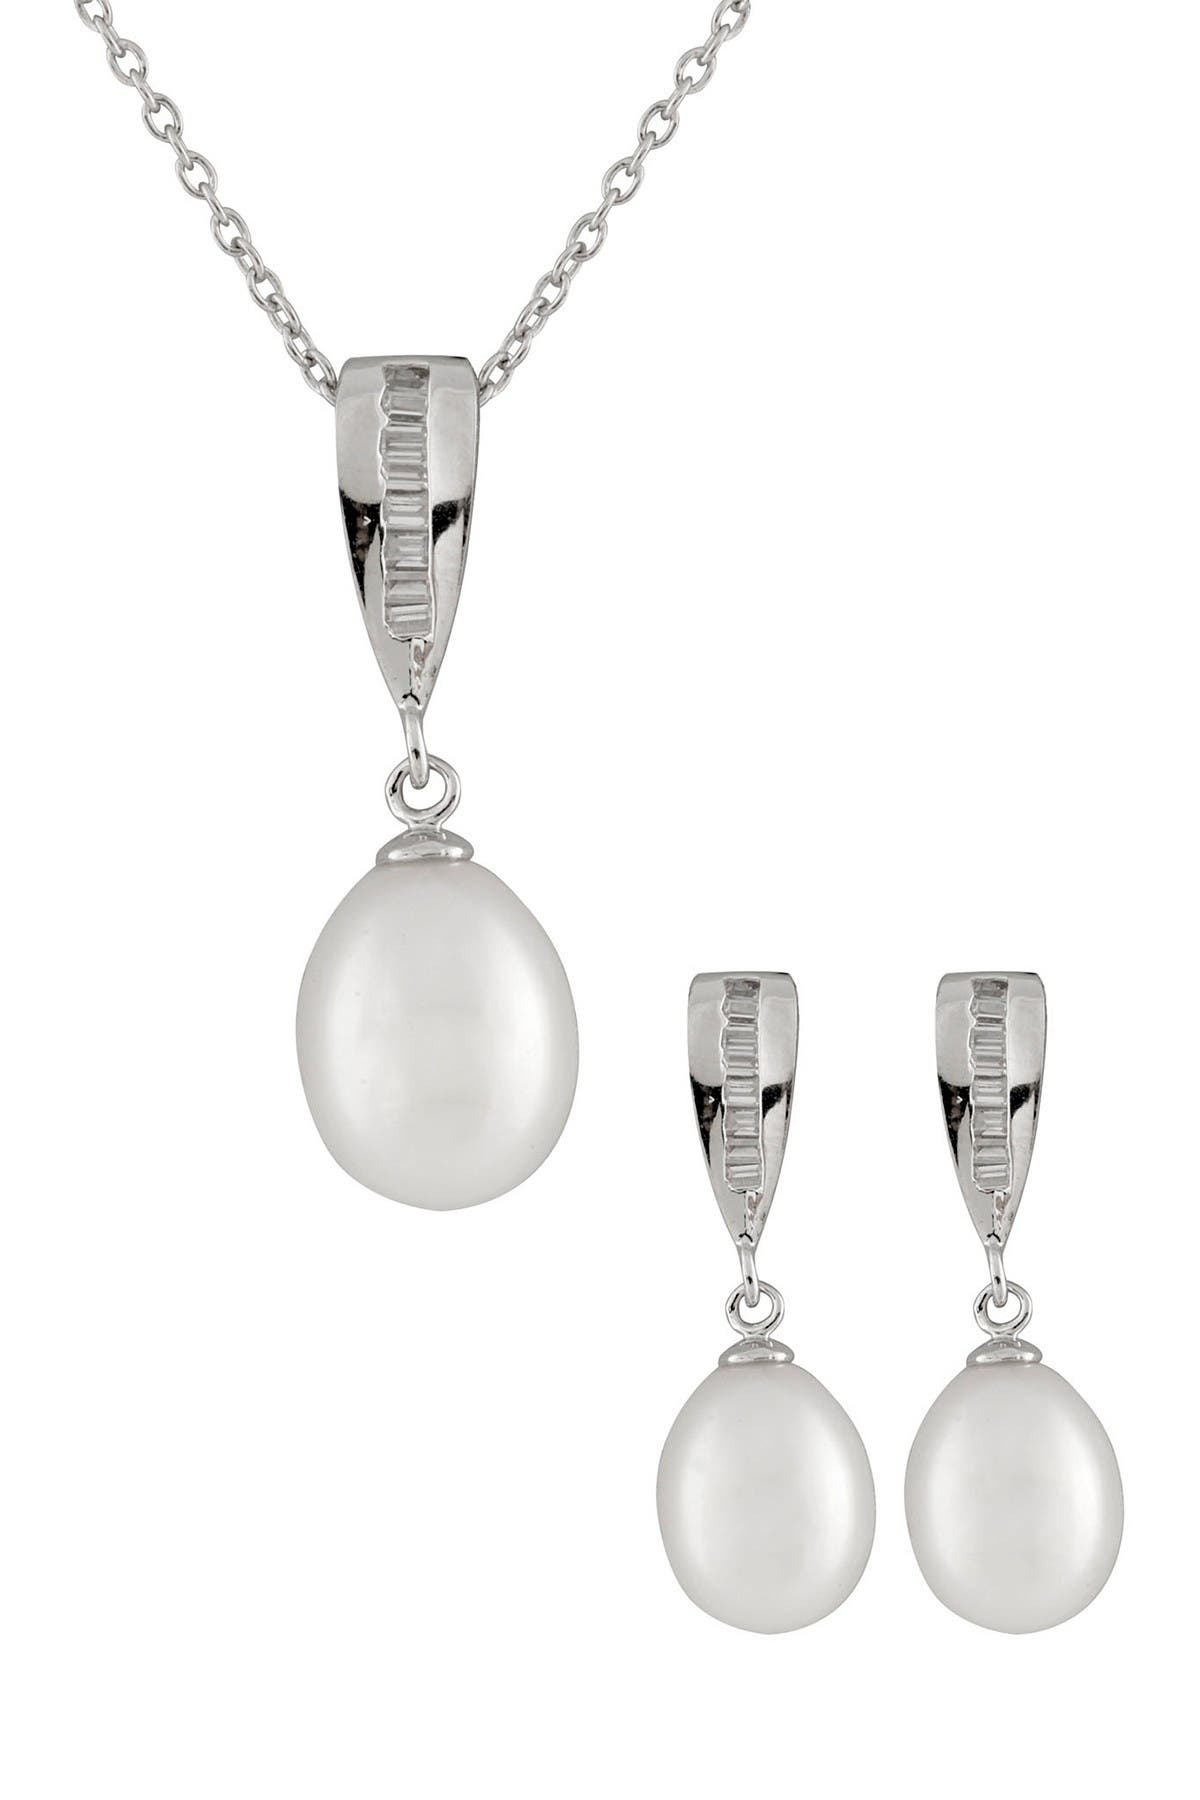 Splendid Pearls 7-8mm White Freshwater Pearl & Channel Set Baguette Pendant Necklace & Earrings Set at Nordstrom Rack